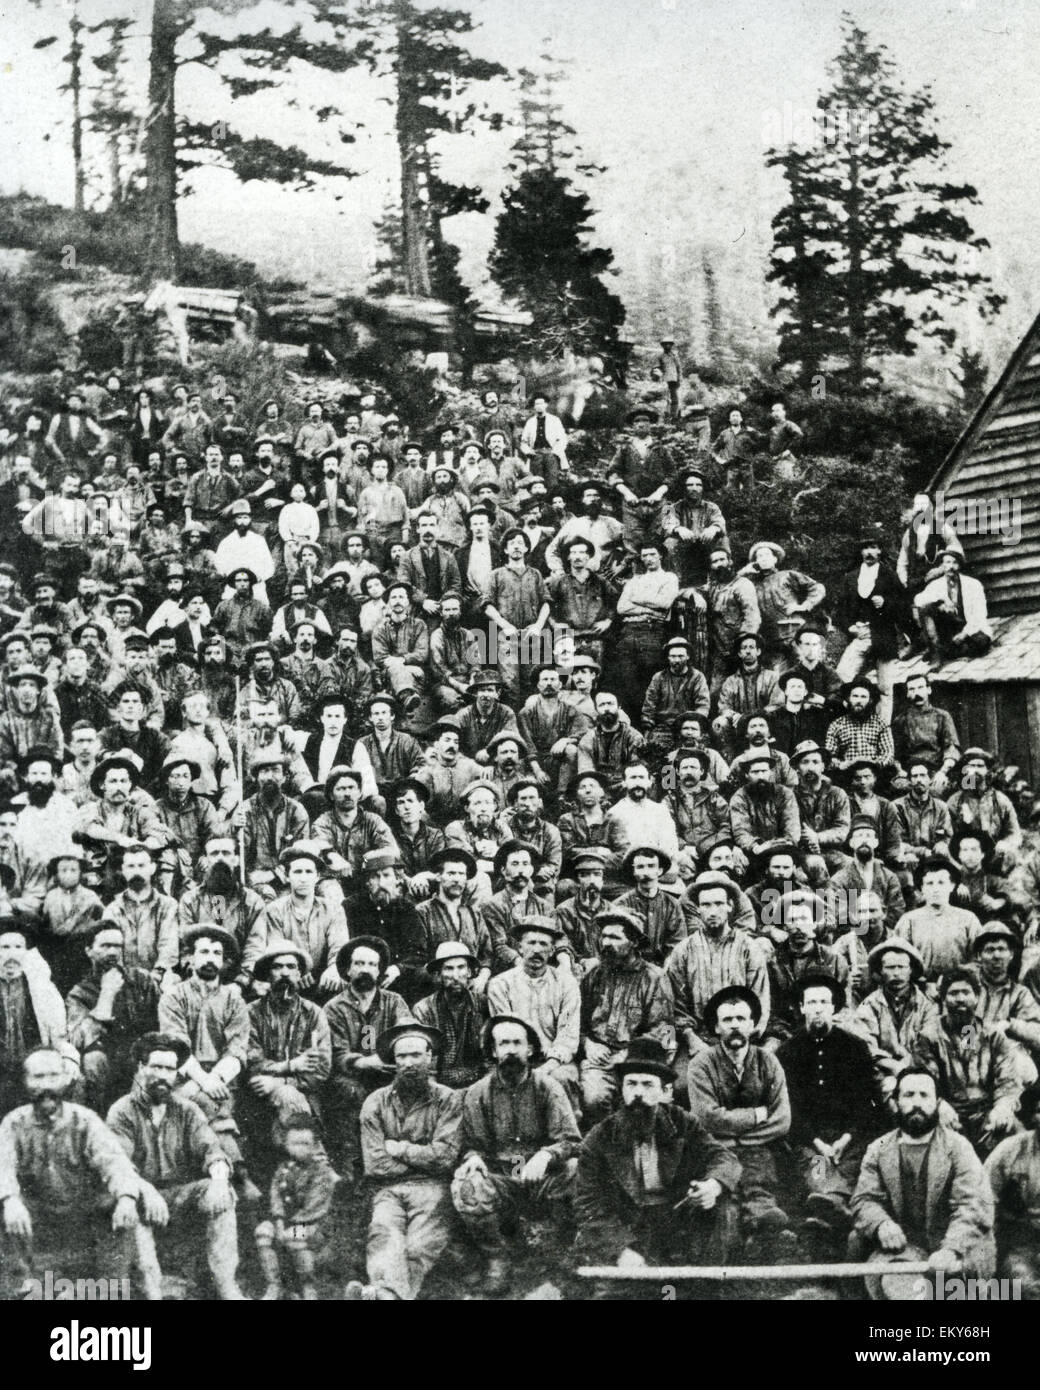 CALIFORNIA GOLD RUSH  Group of miners about 1852 - Stock Image